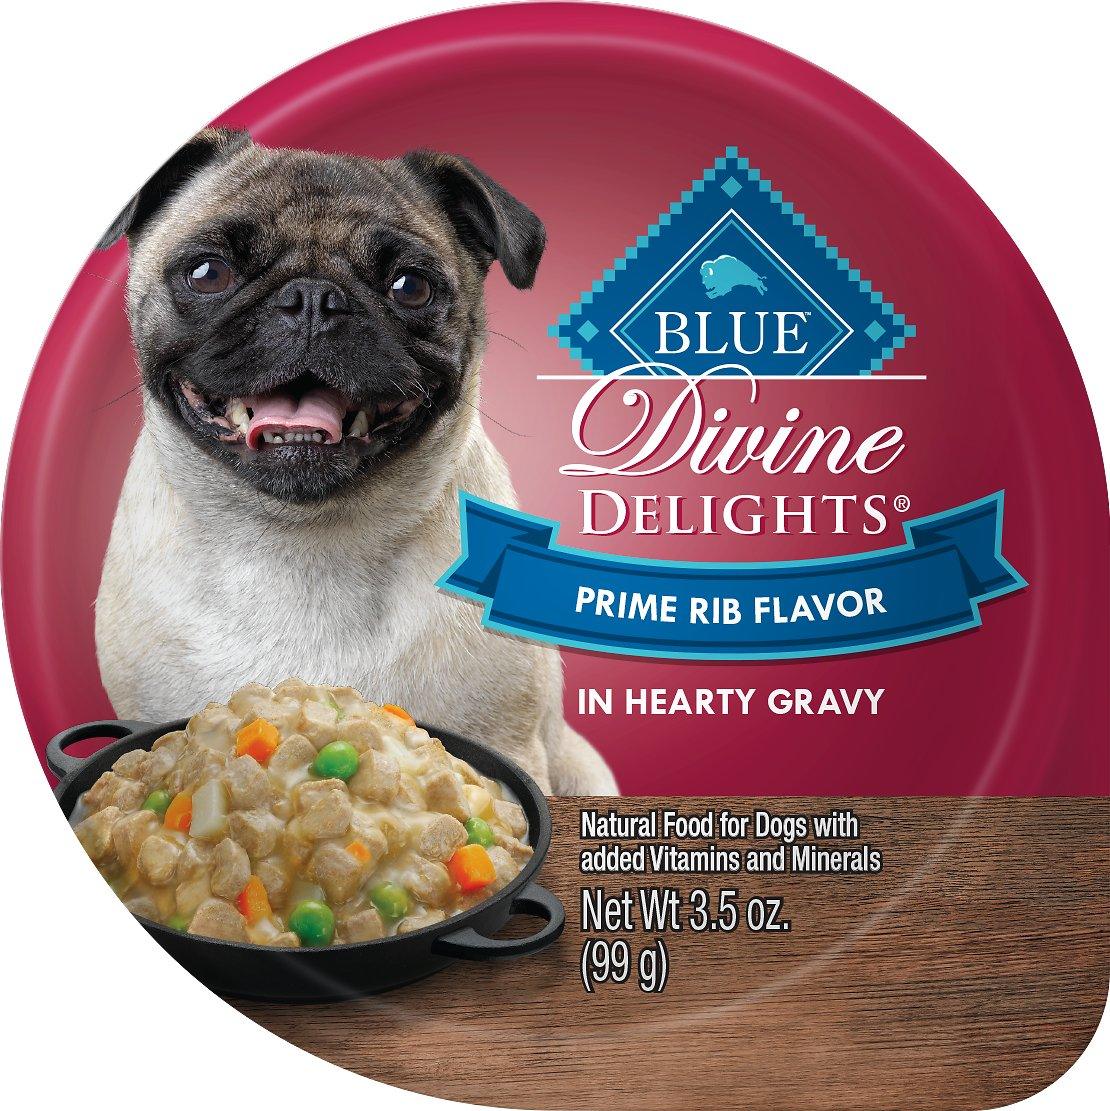 Blue Buffalo Divine Delights Prime Rib Flavor Hearty Gravy Dog Food Trays, 3.5-oz, case of 12